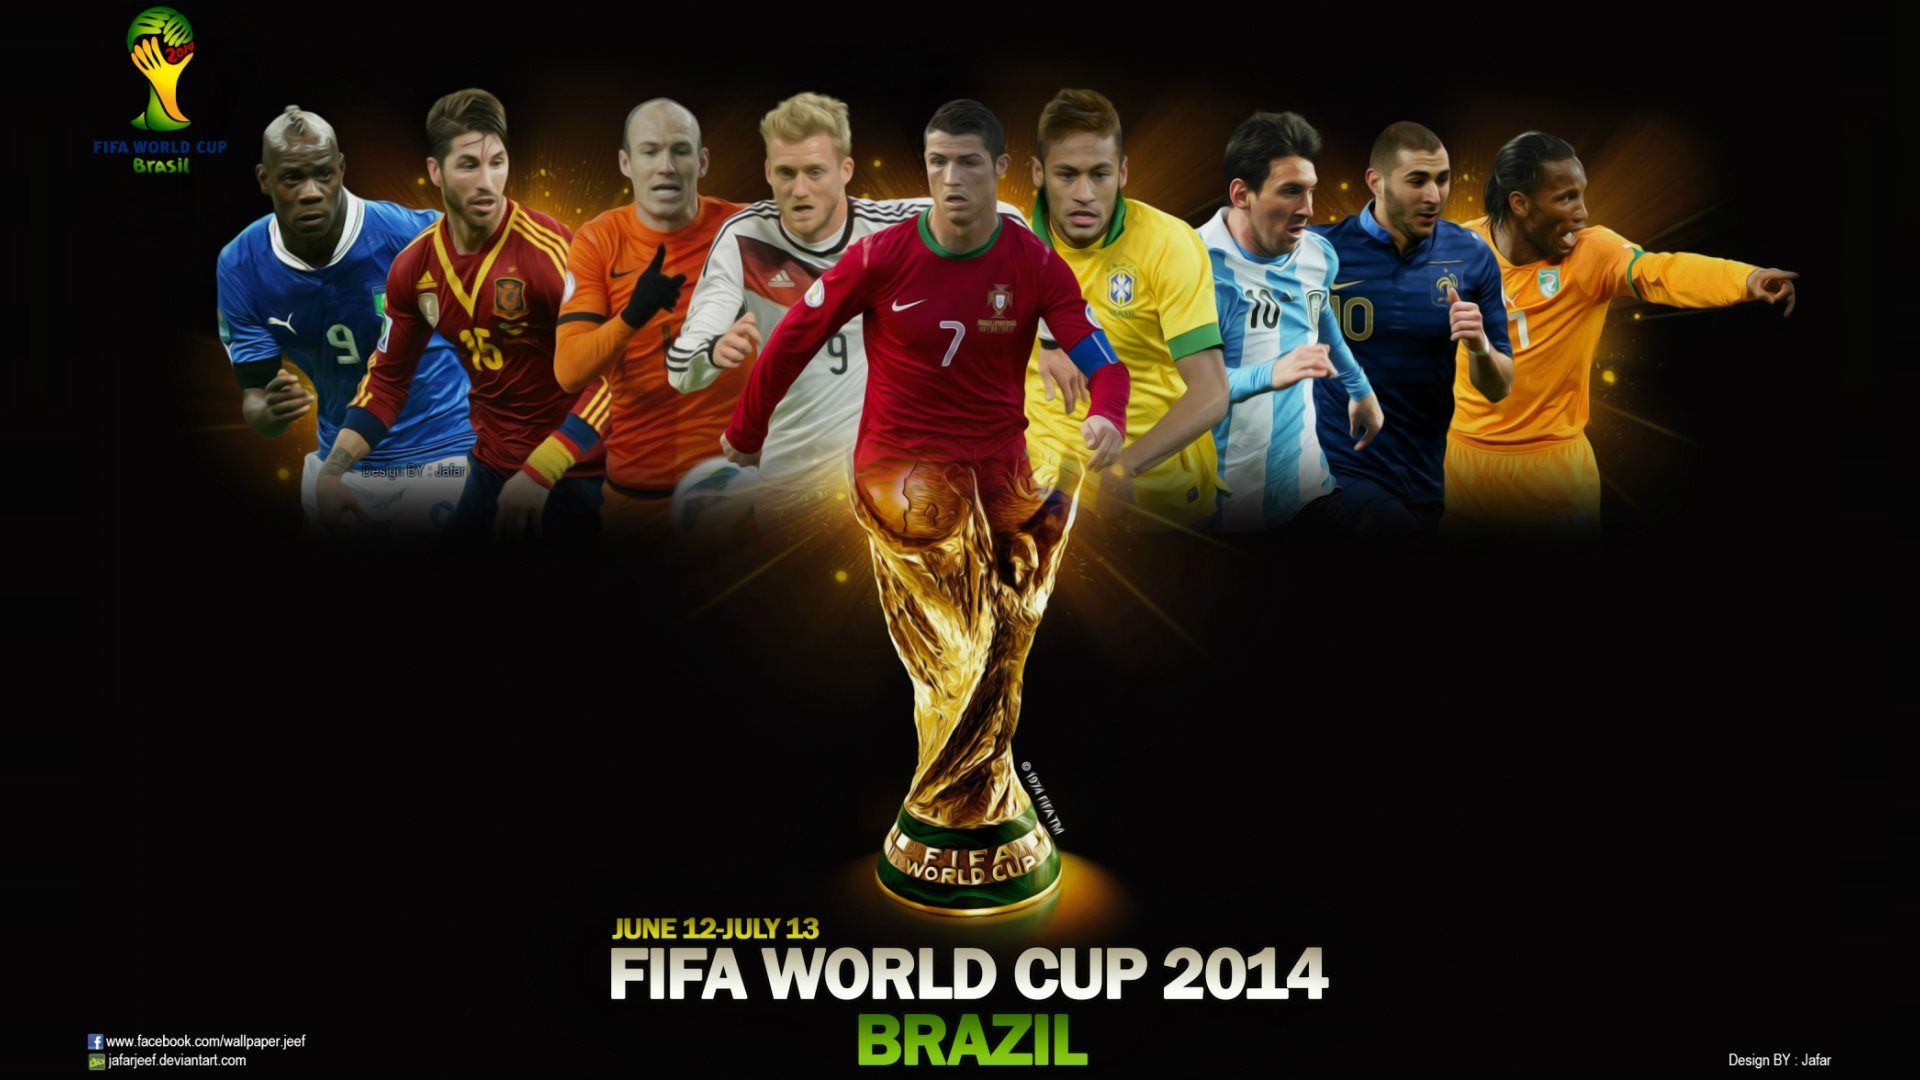 all football players in fifa world cup 2014 brasil photo